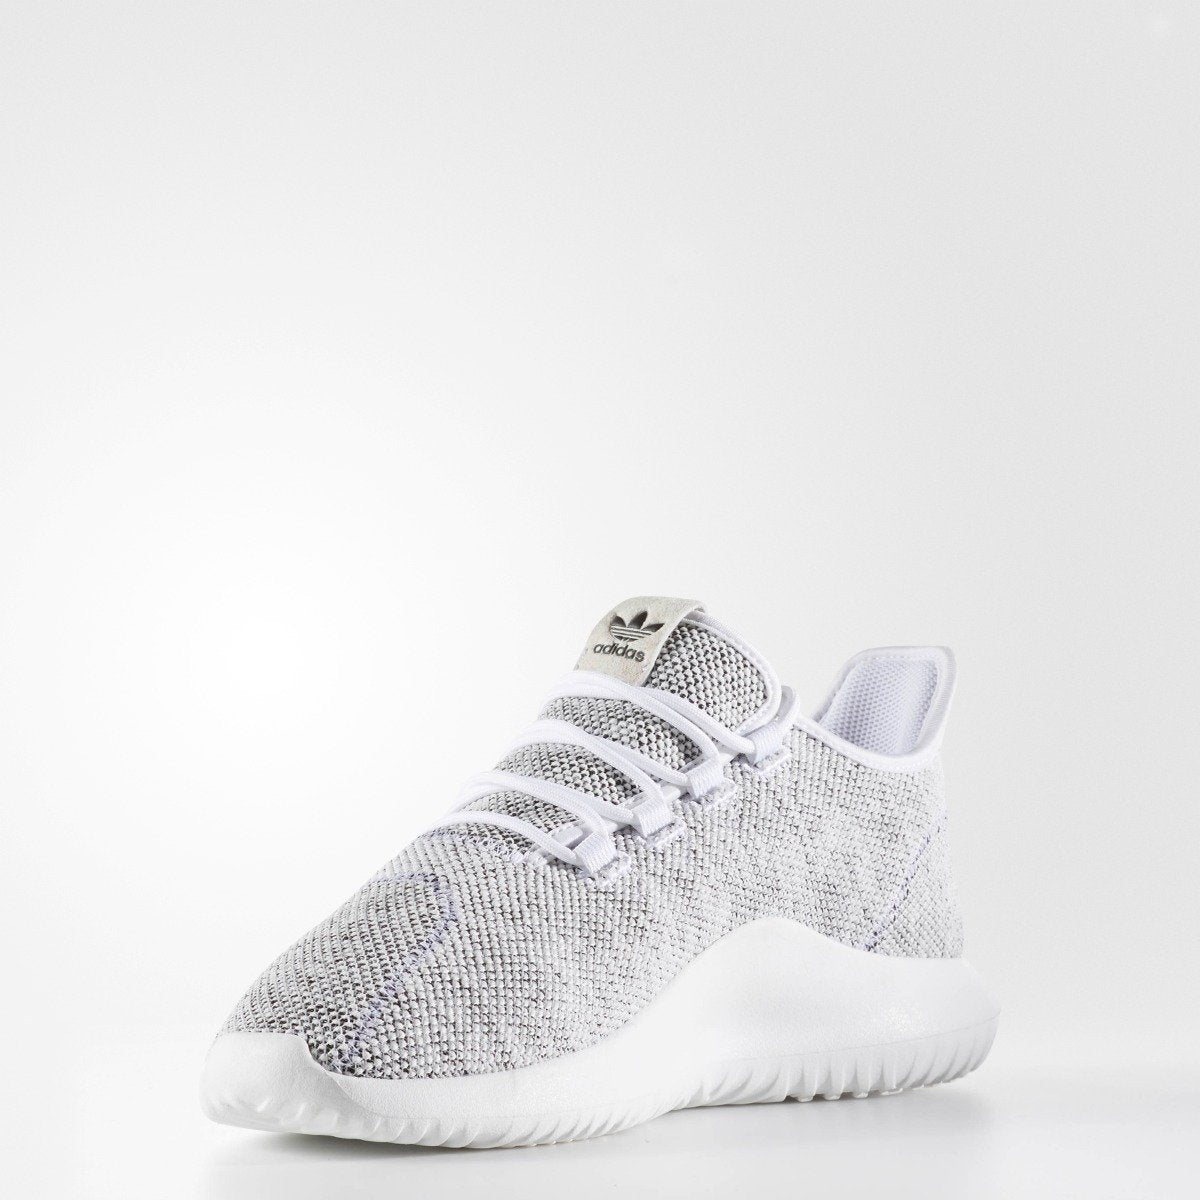 finest selection 5538b 99225 Men's Adidas Originals Tubular Shadow Shoes White BB8827 ...